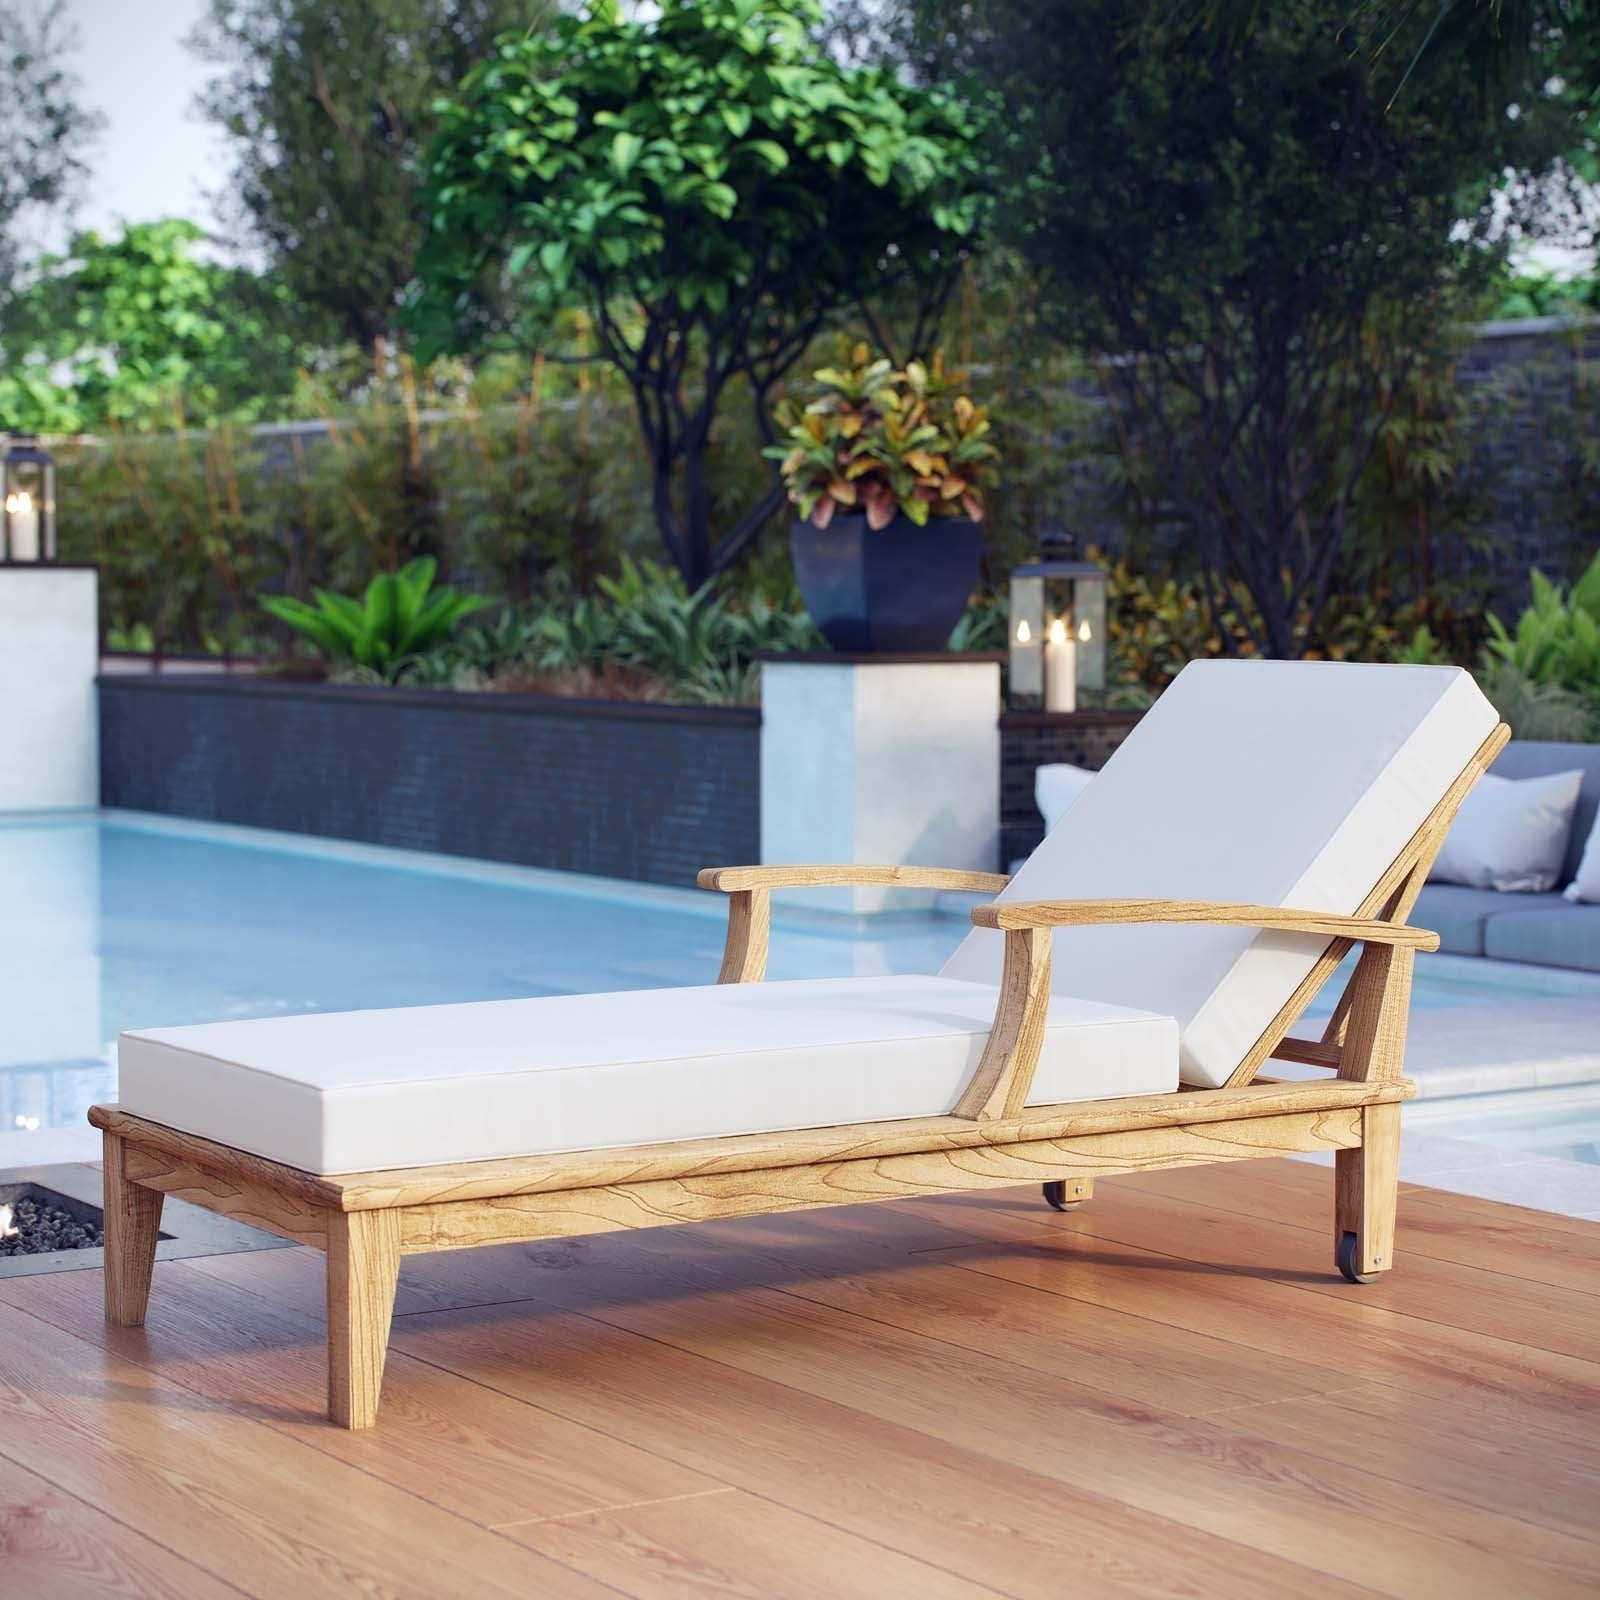 Shop Pier Outdoor Patio Teak Wood Single Chaise - Free Shipping ...